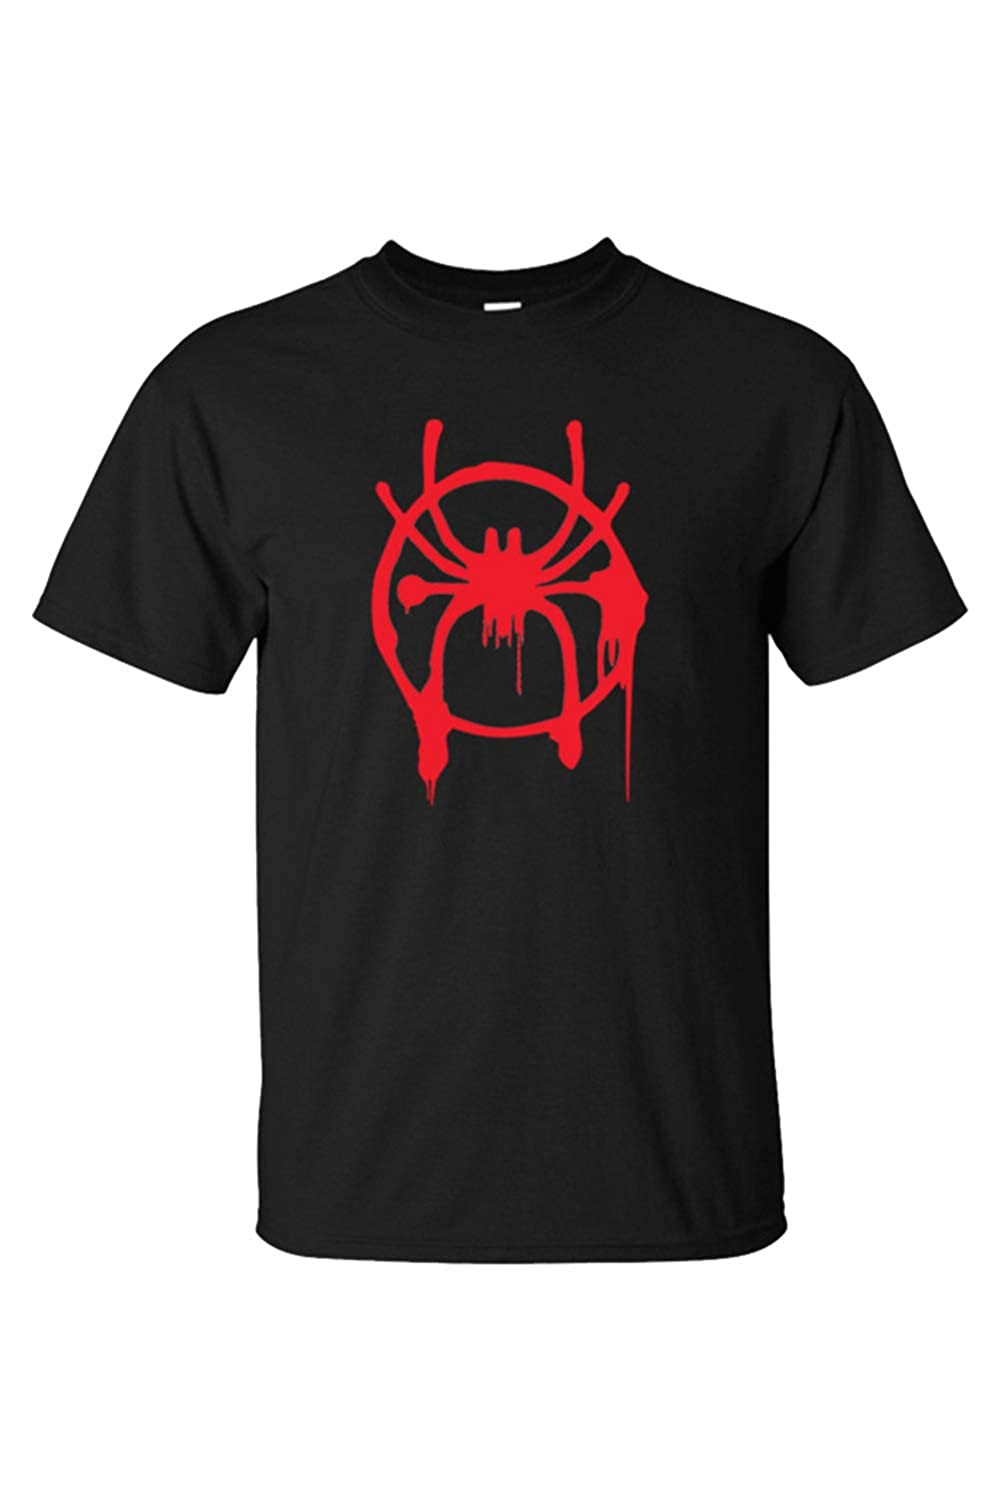 Adult Miles Morales Thicken Into The Spiderverse Hooded Pullover Top Black Shirts